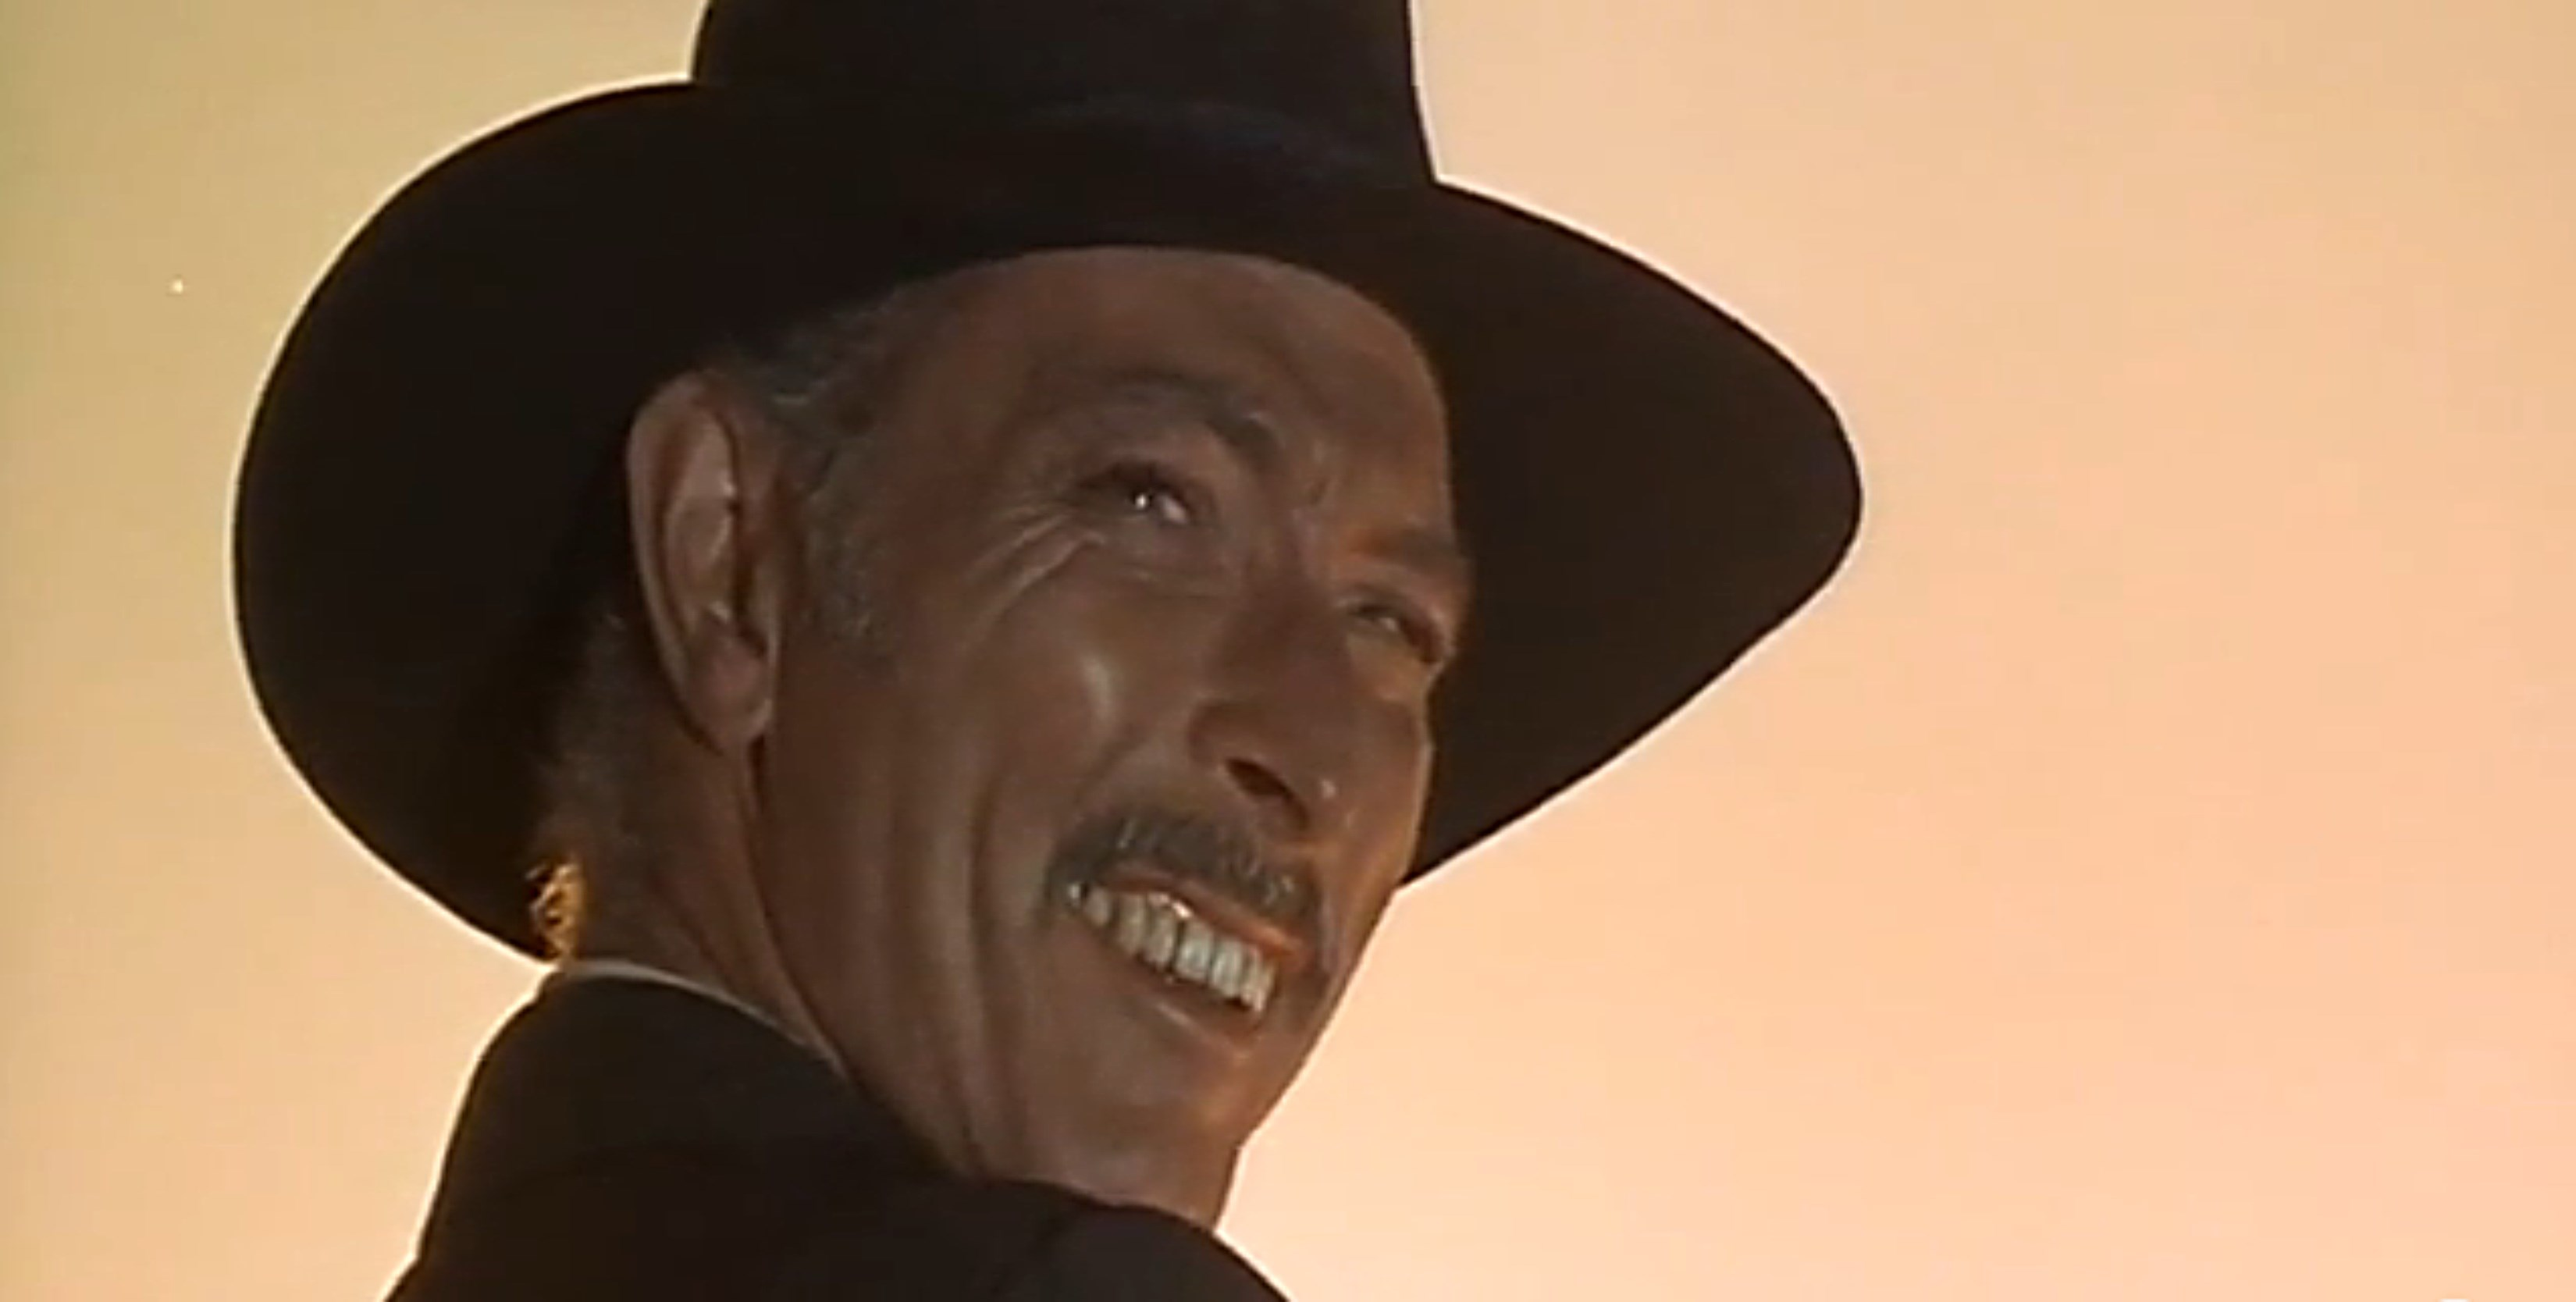 Lee Van Cleef | Known people - famous people news and biographies